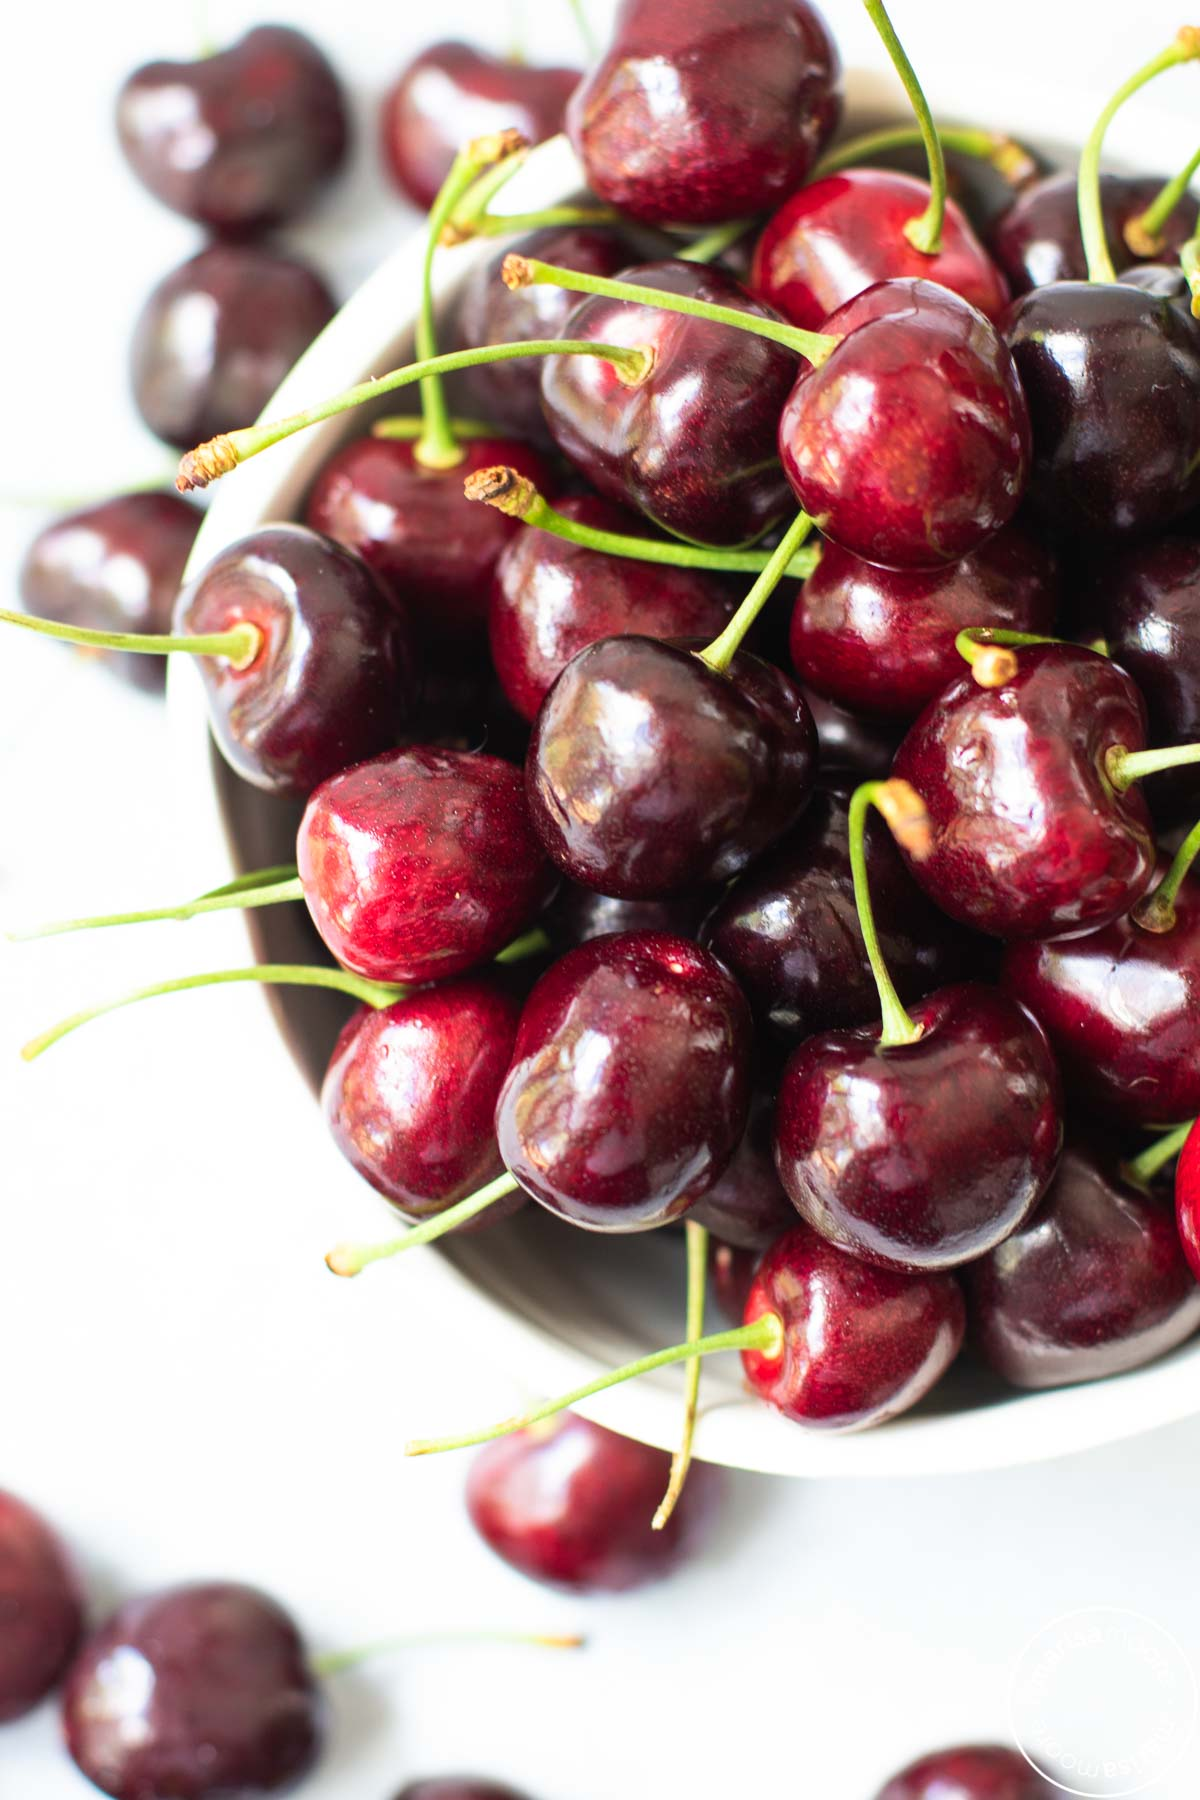 fresh dark sweet cherries with green stems in a white bowl with cherries scattered around